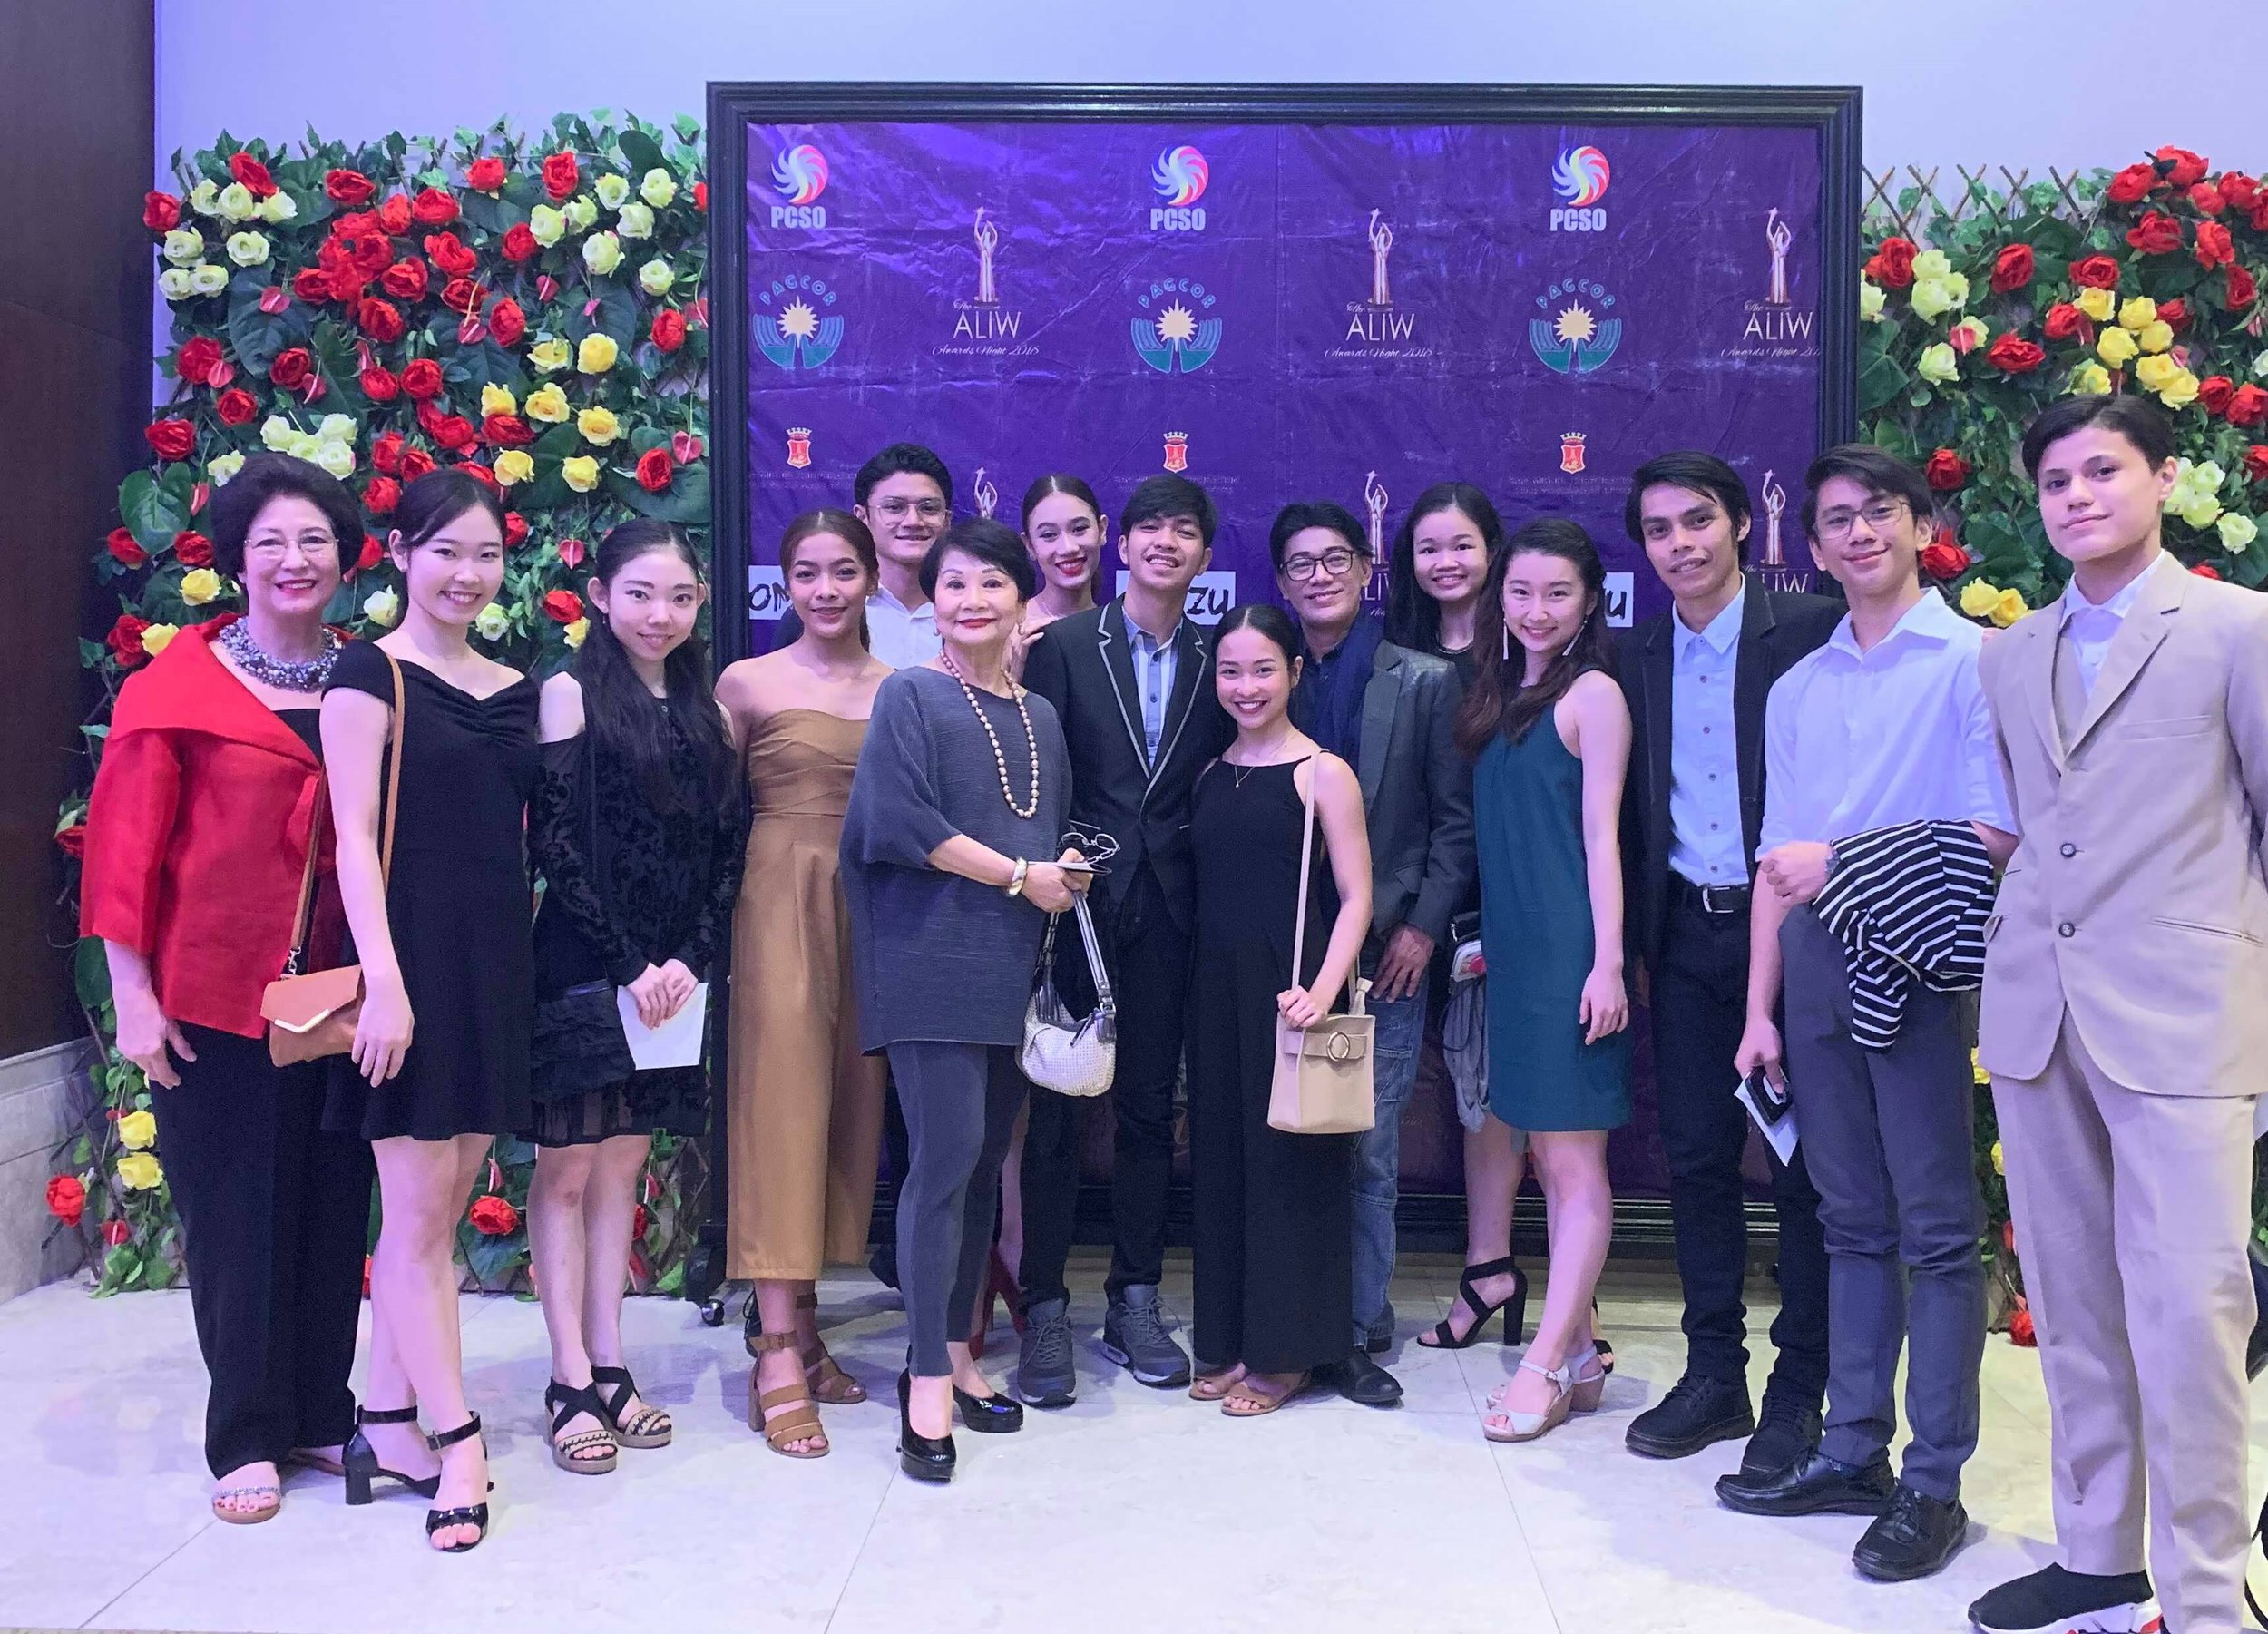 The Ballet Manila delegation to the Aliw Awards ceremony on December 13, led by BM co-artistic director Osias Barroso (sixth from right), BM treasurer Susan Macuja (fifth from left) and BM-Project Ballet Futures managing director Sylvia Lichauco (leftmost). Photo by Mark Sumaylo